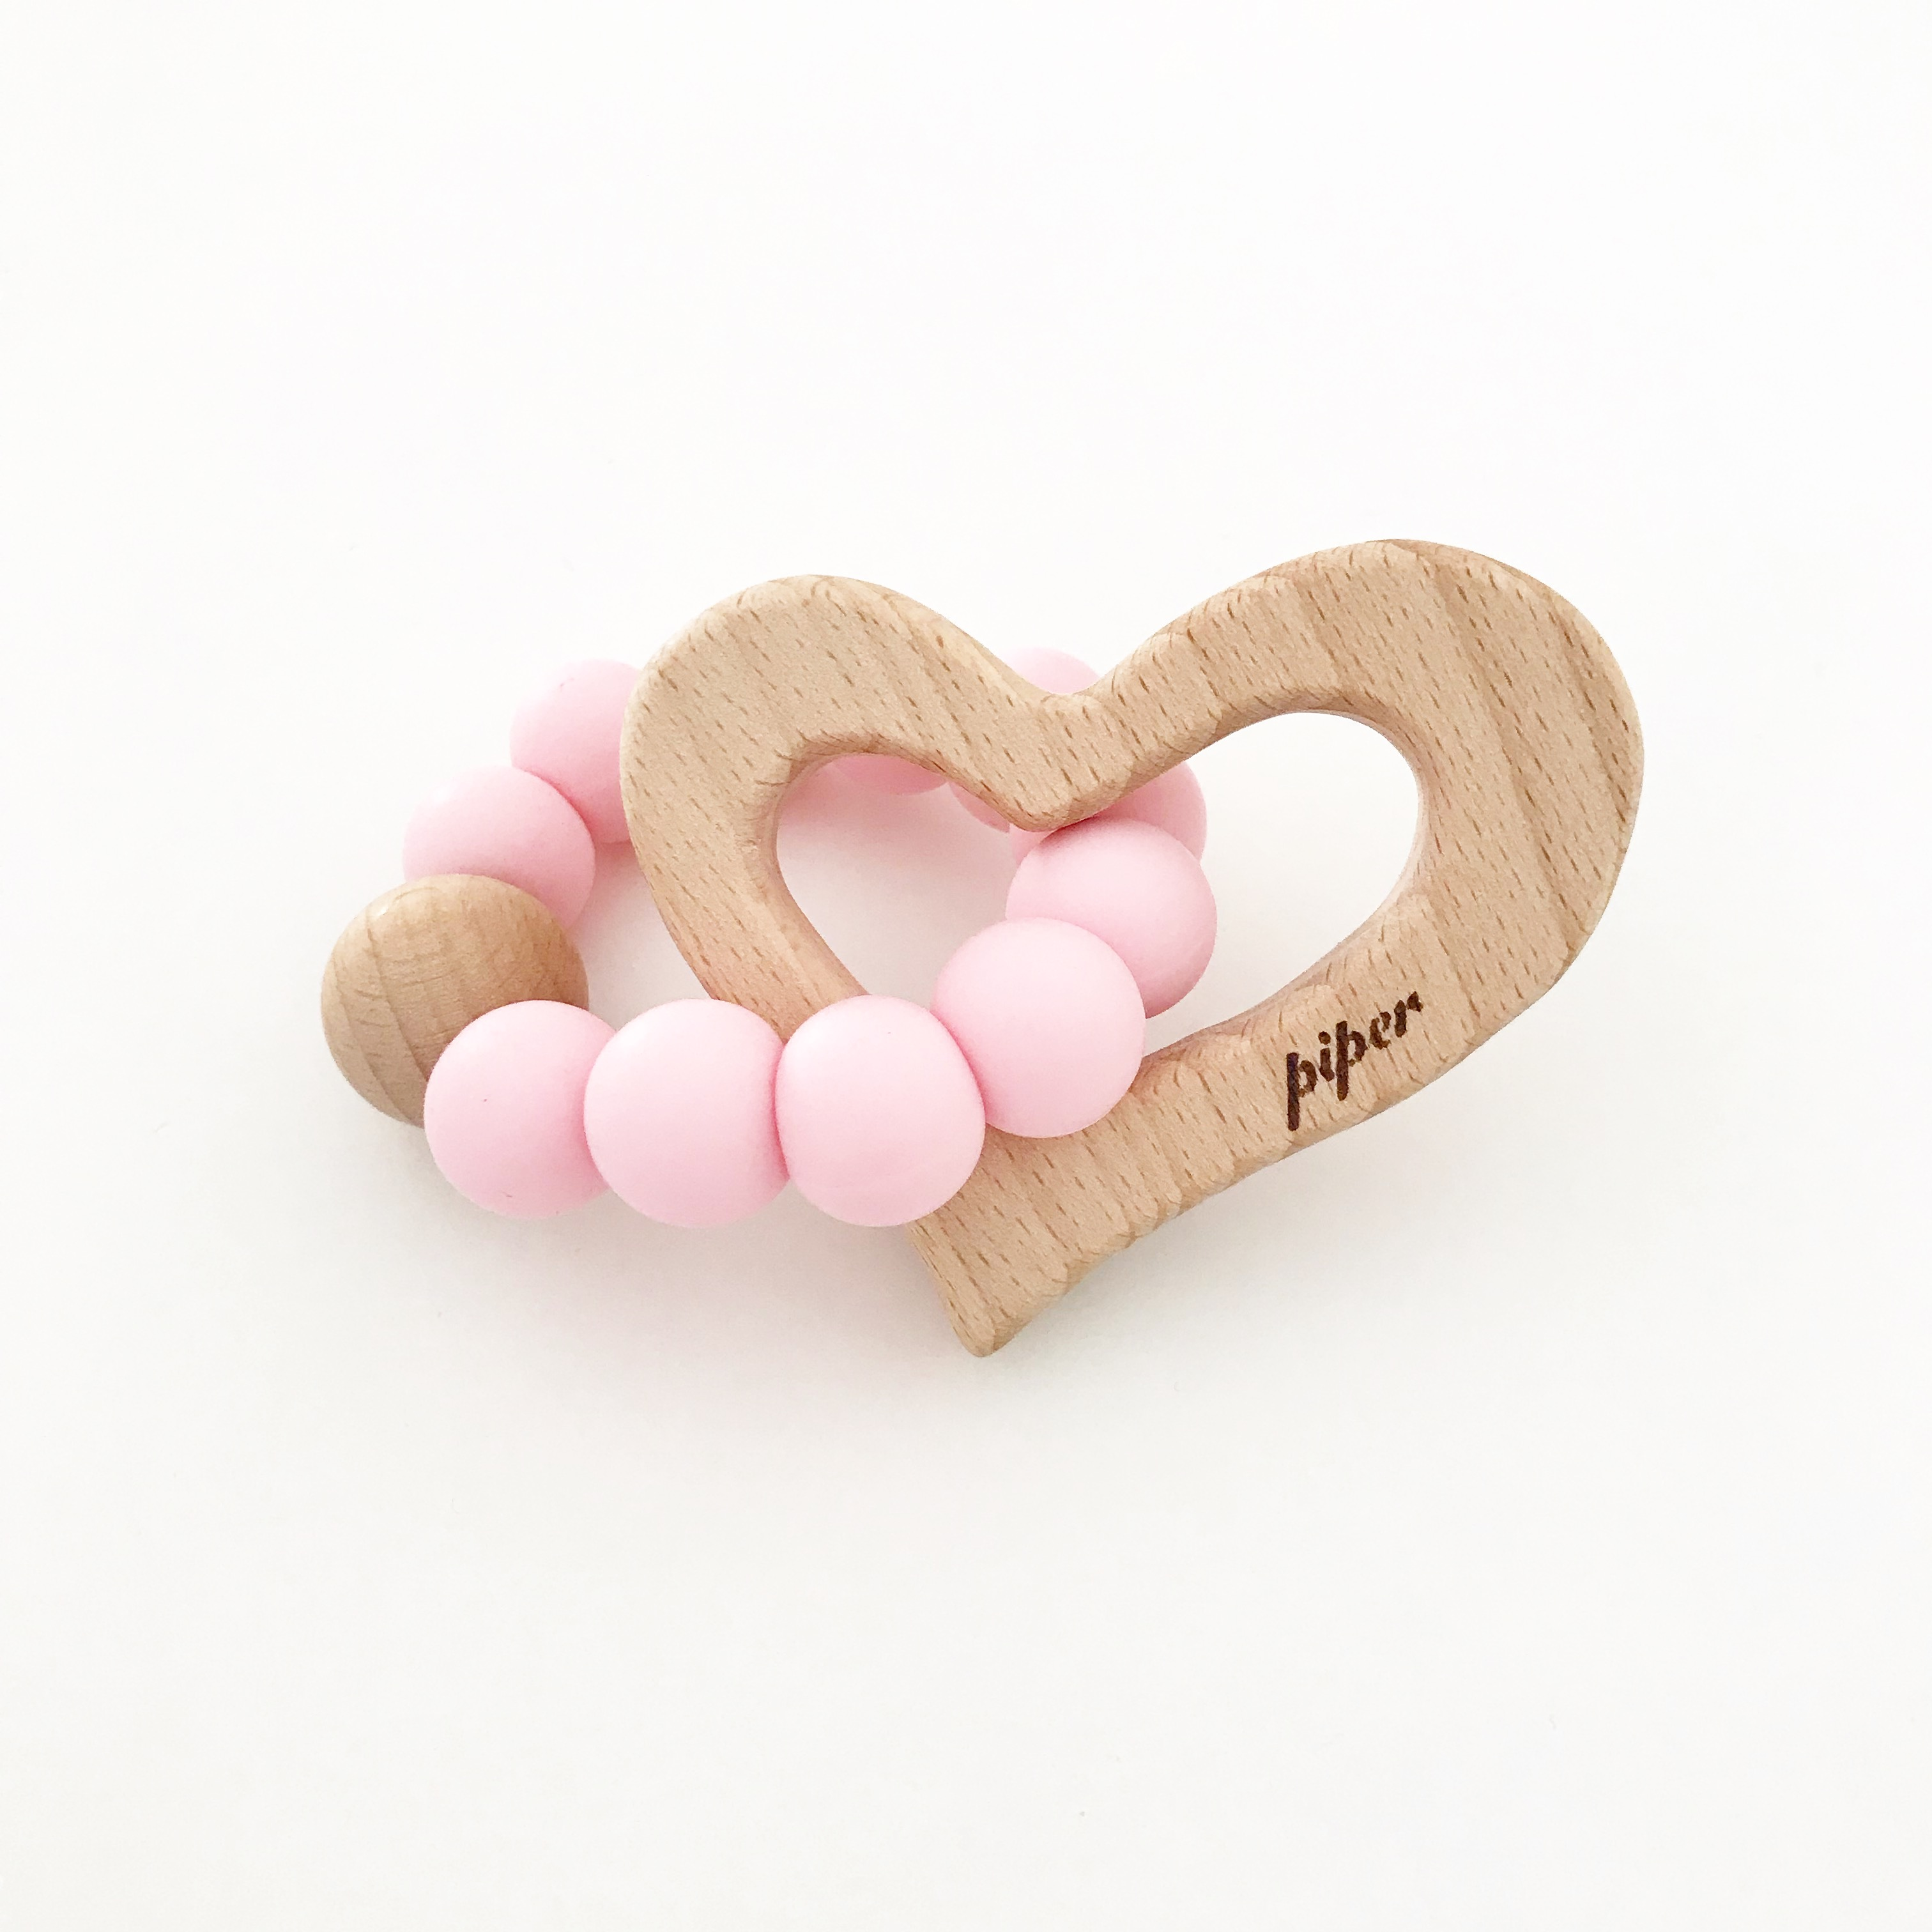 Our Little Helpers Wooden Fox Wooden Heart Wooden Cloud And